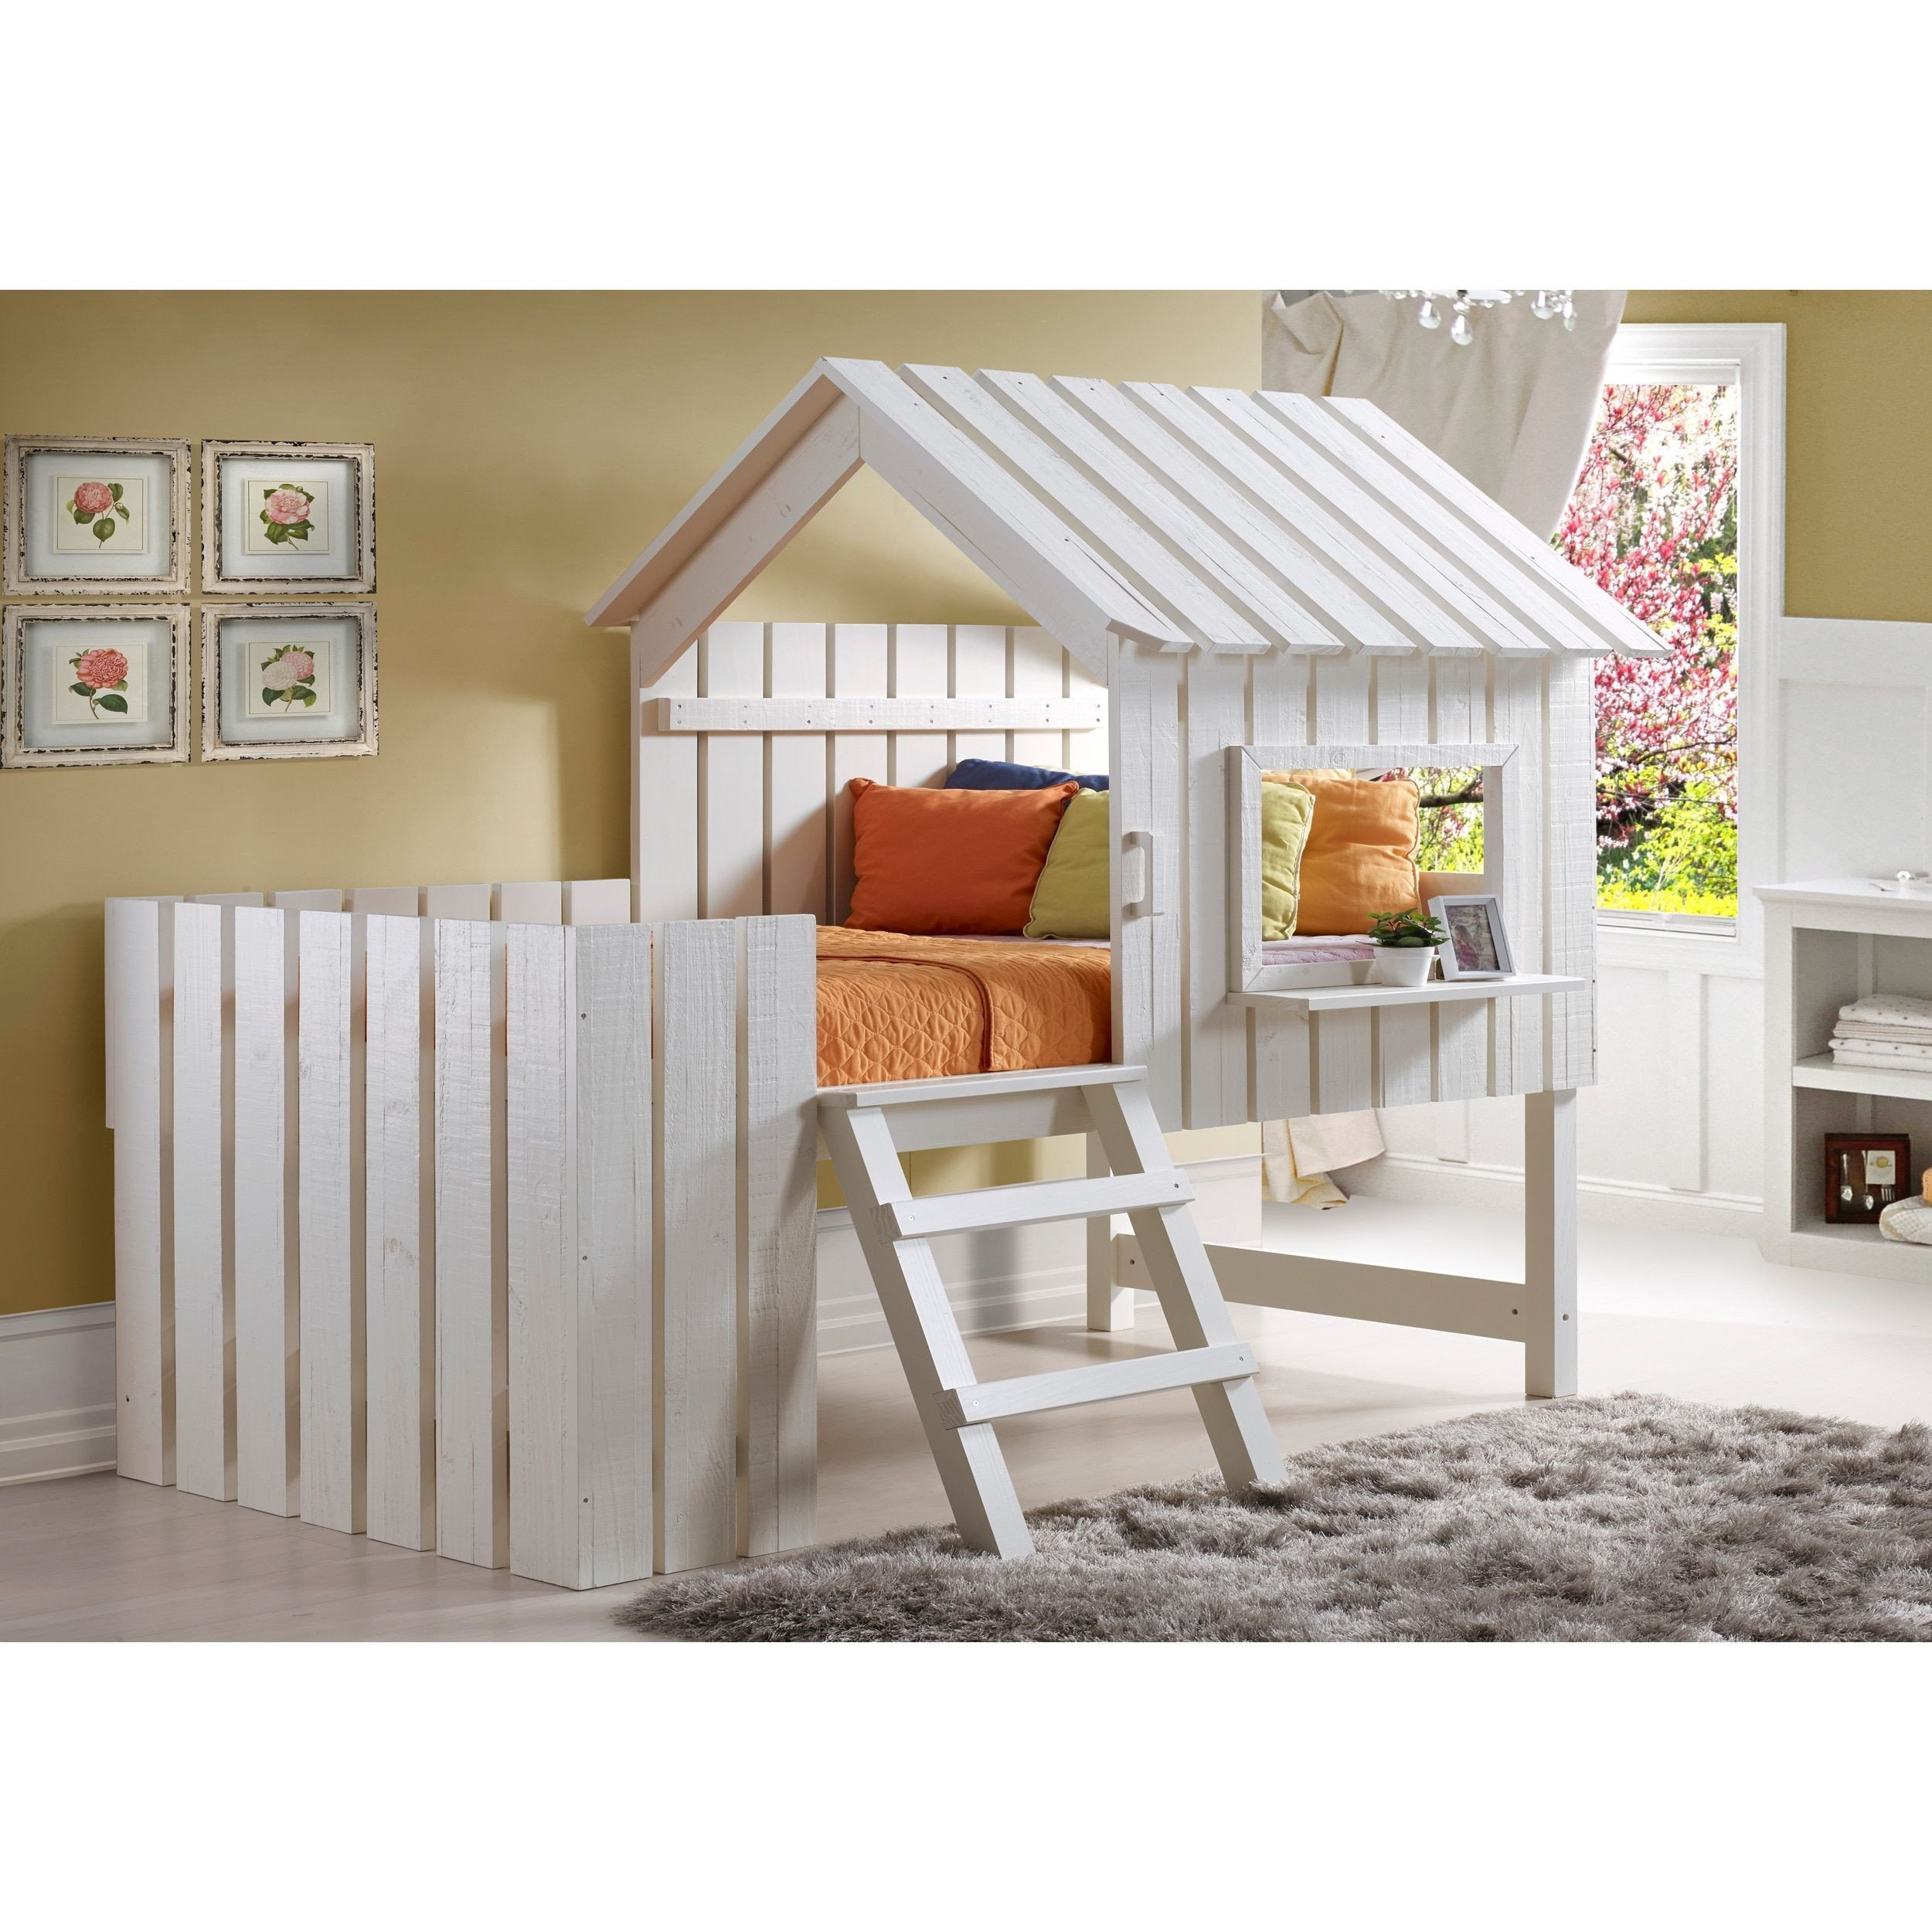 Cheap Bedroom Decor Online Shopping Awesome Donco Kids 2 In 1 Cabana Loft Bed and Play House In Rustic